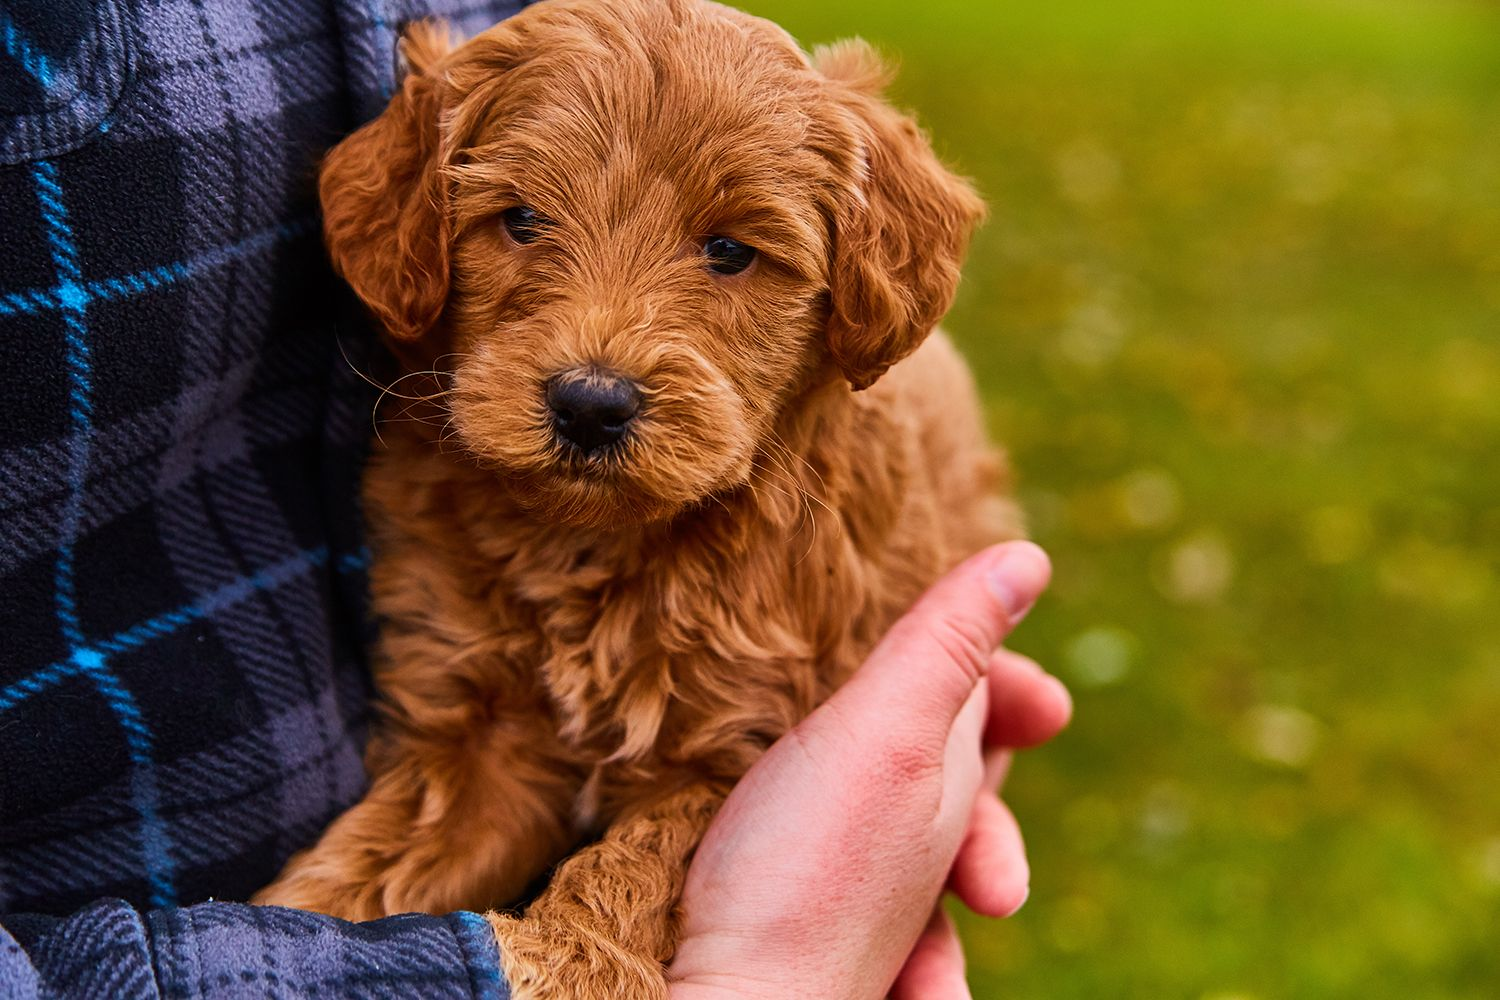 This F1b Mini Golden Doodle is so fluffy! You just want to